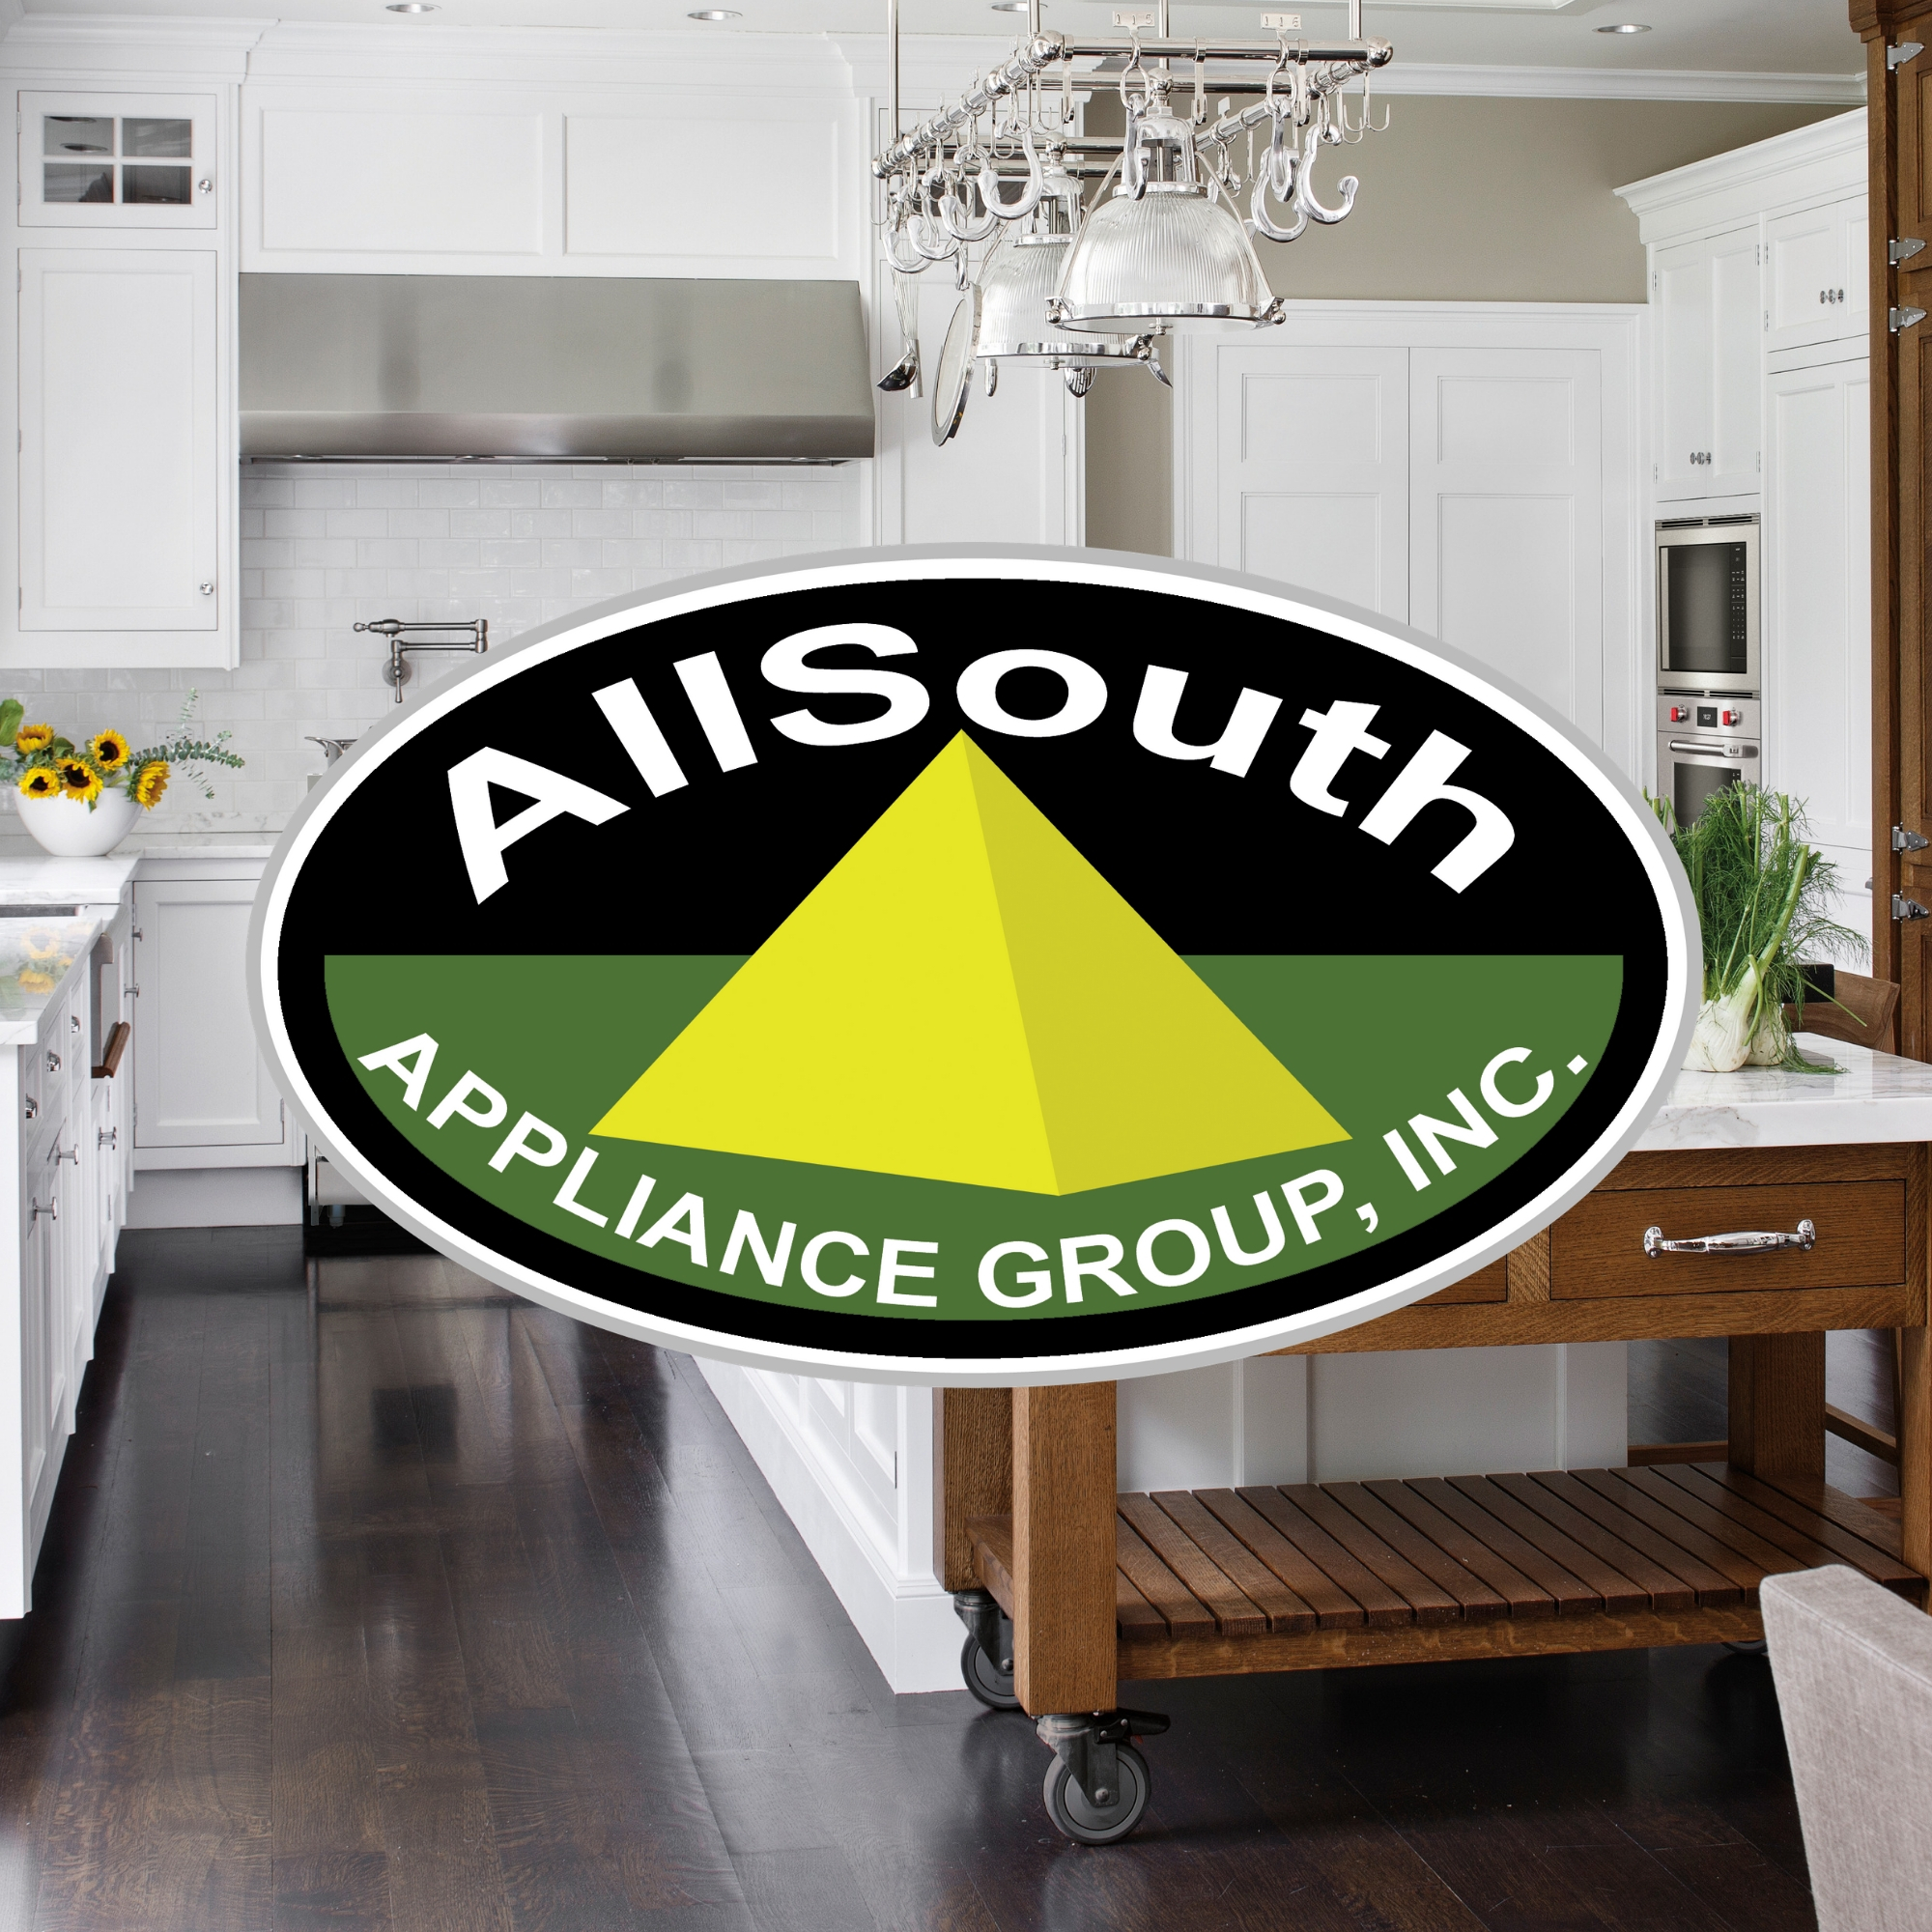 AllSouth Appliance Group Inc | Birmingham Business Logo